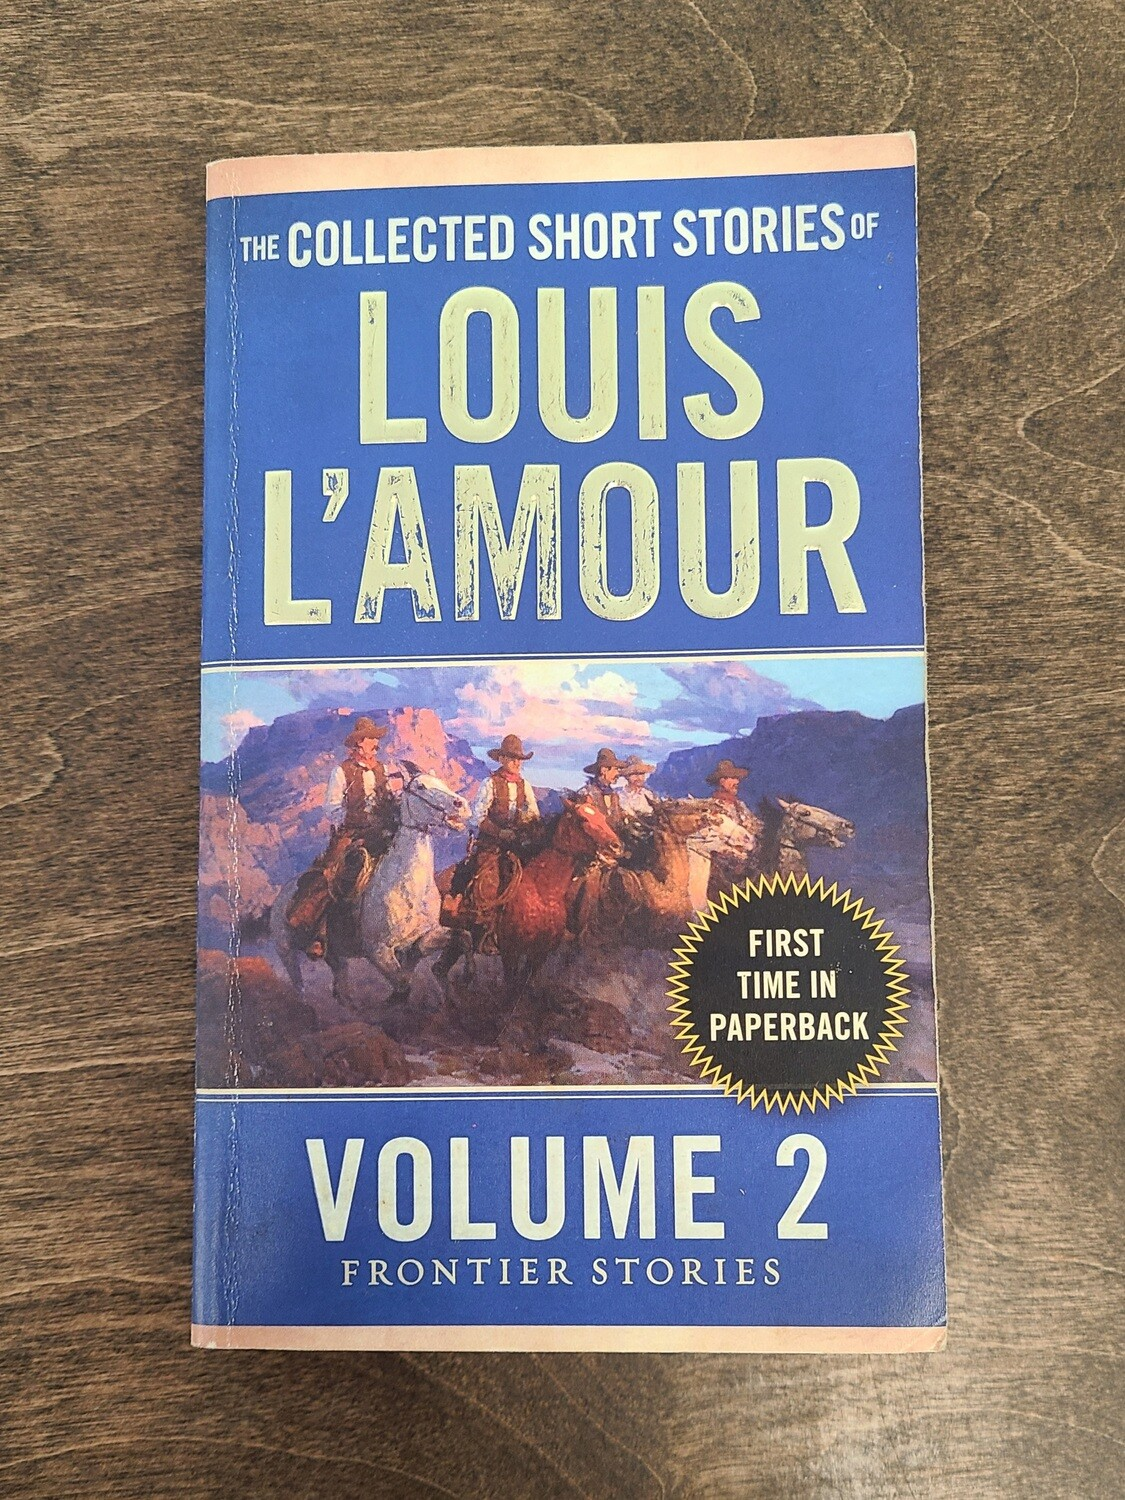 The Collected Short Stories of Louis L'Amour by Louis L'Amour: Volume 2